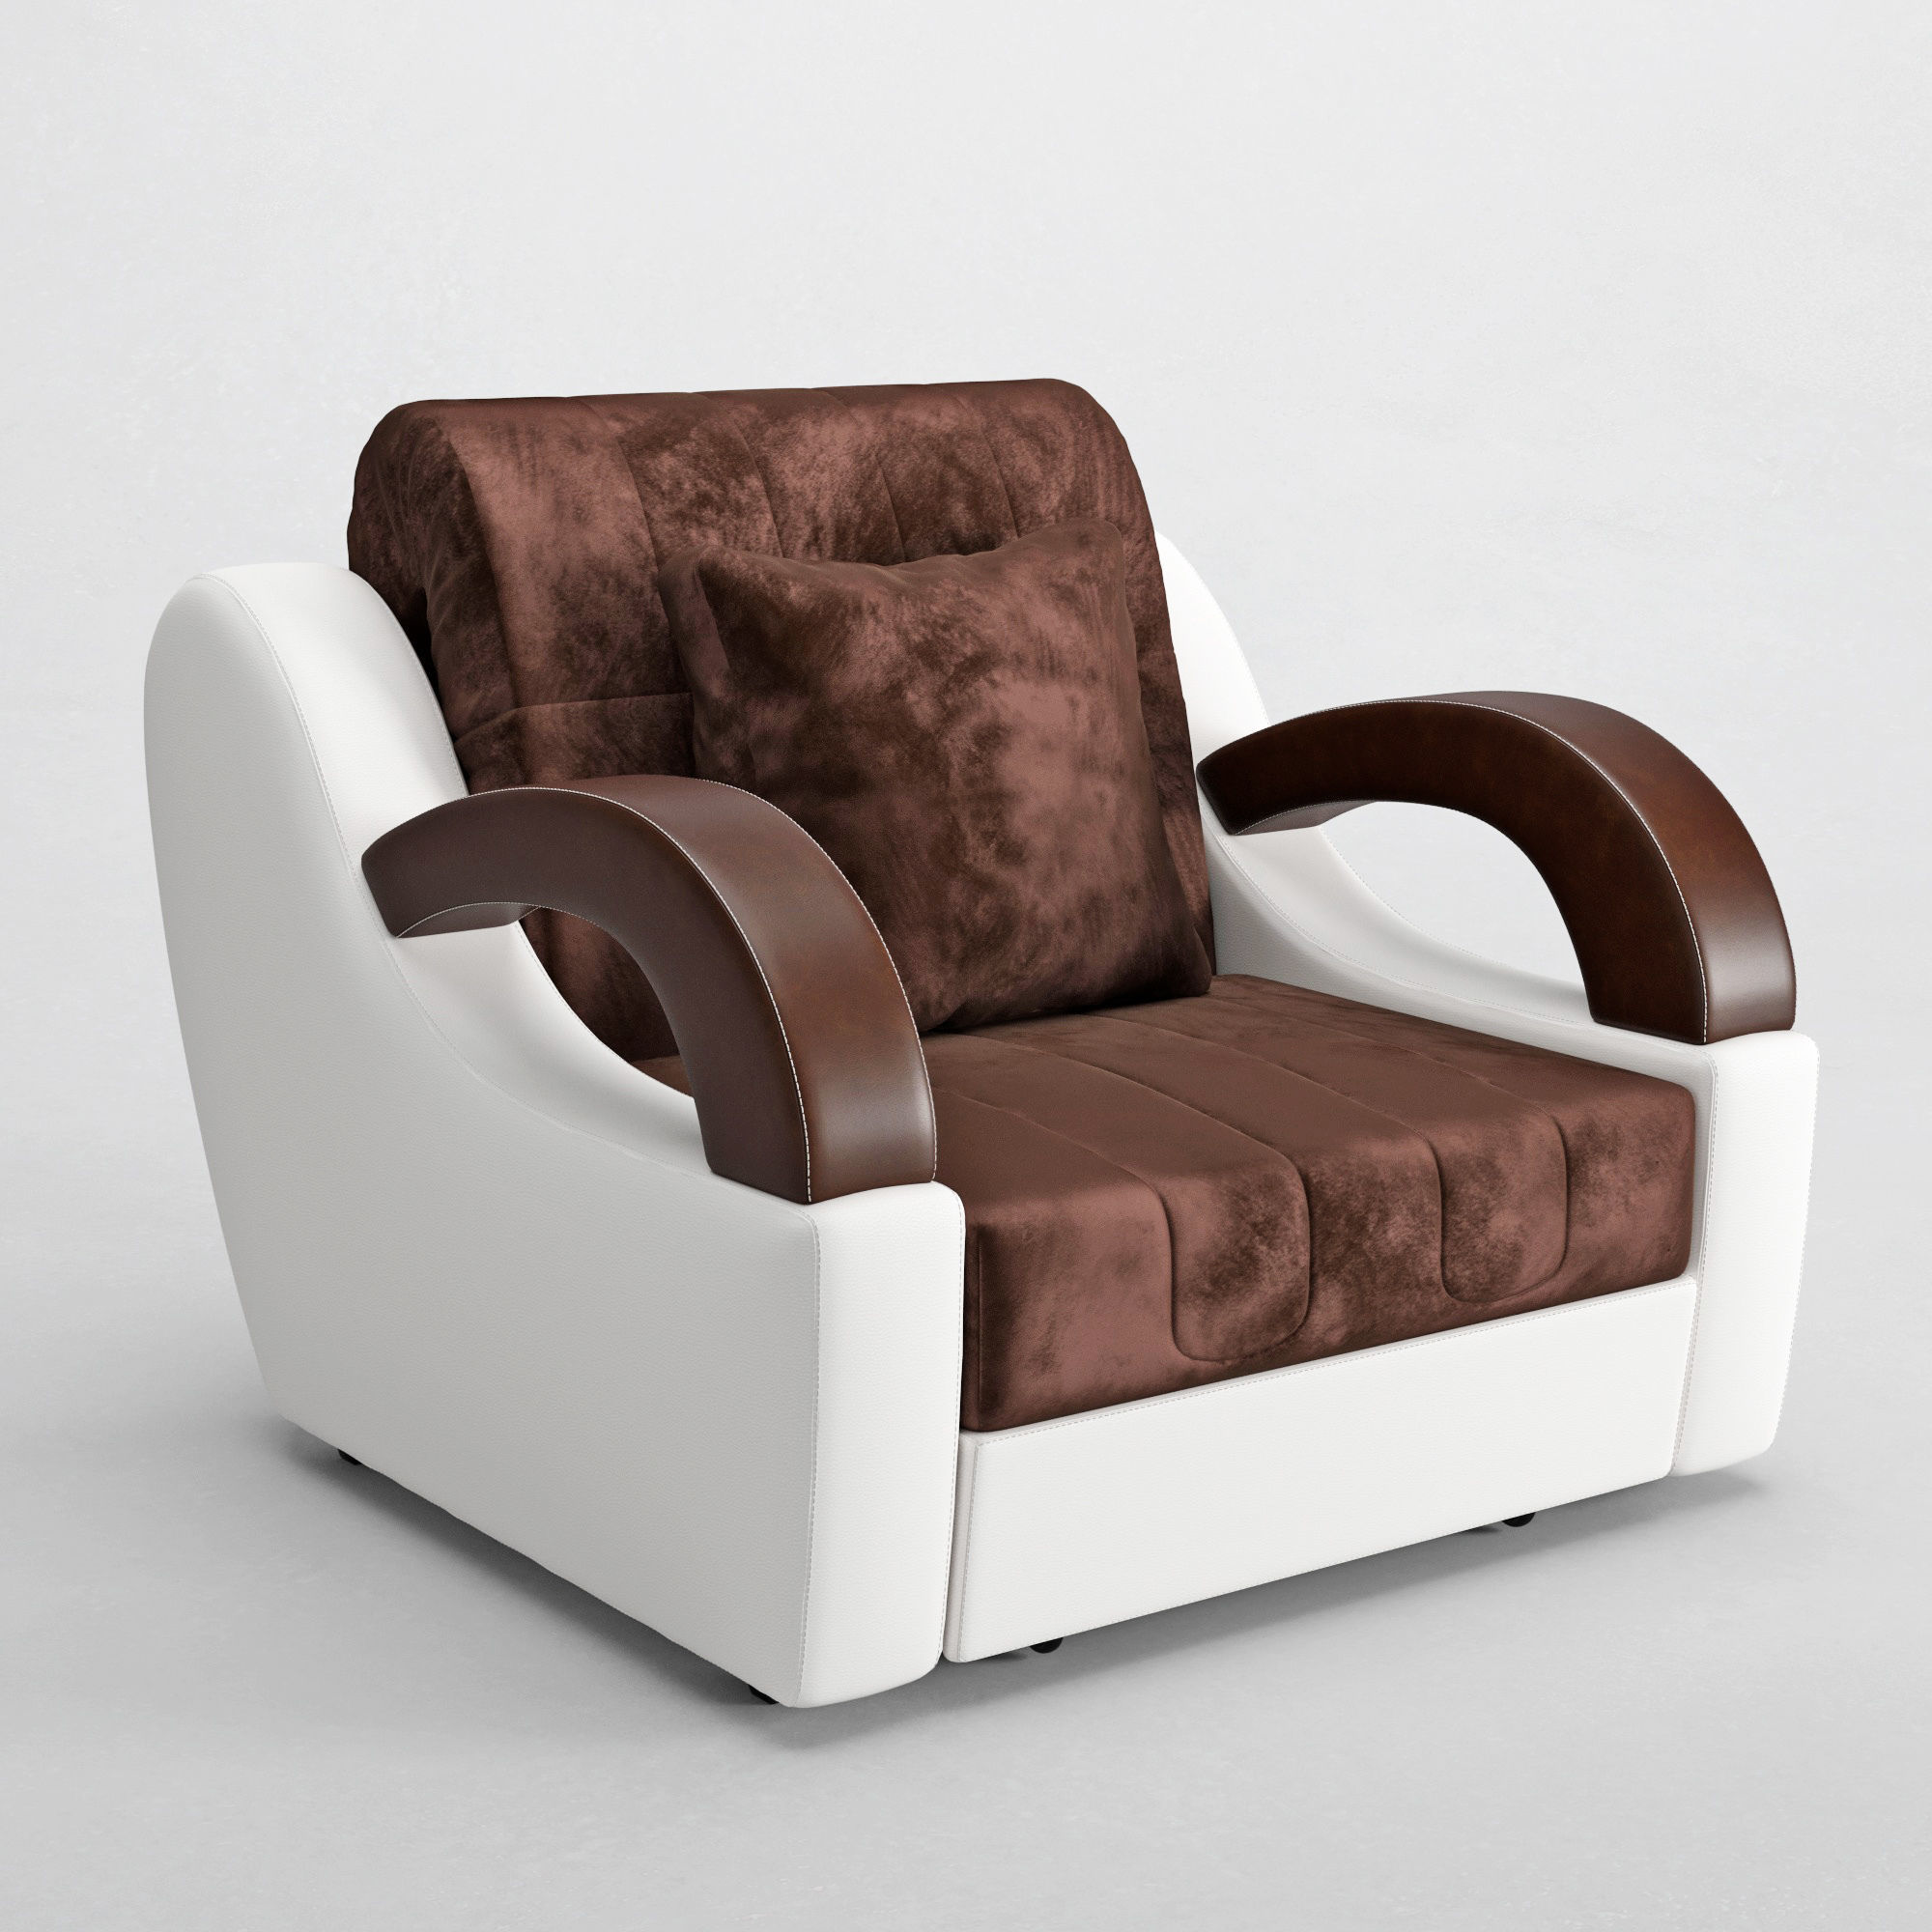 3D model Armchairs Bed Madrid   CGTrader